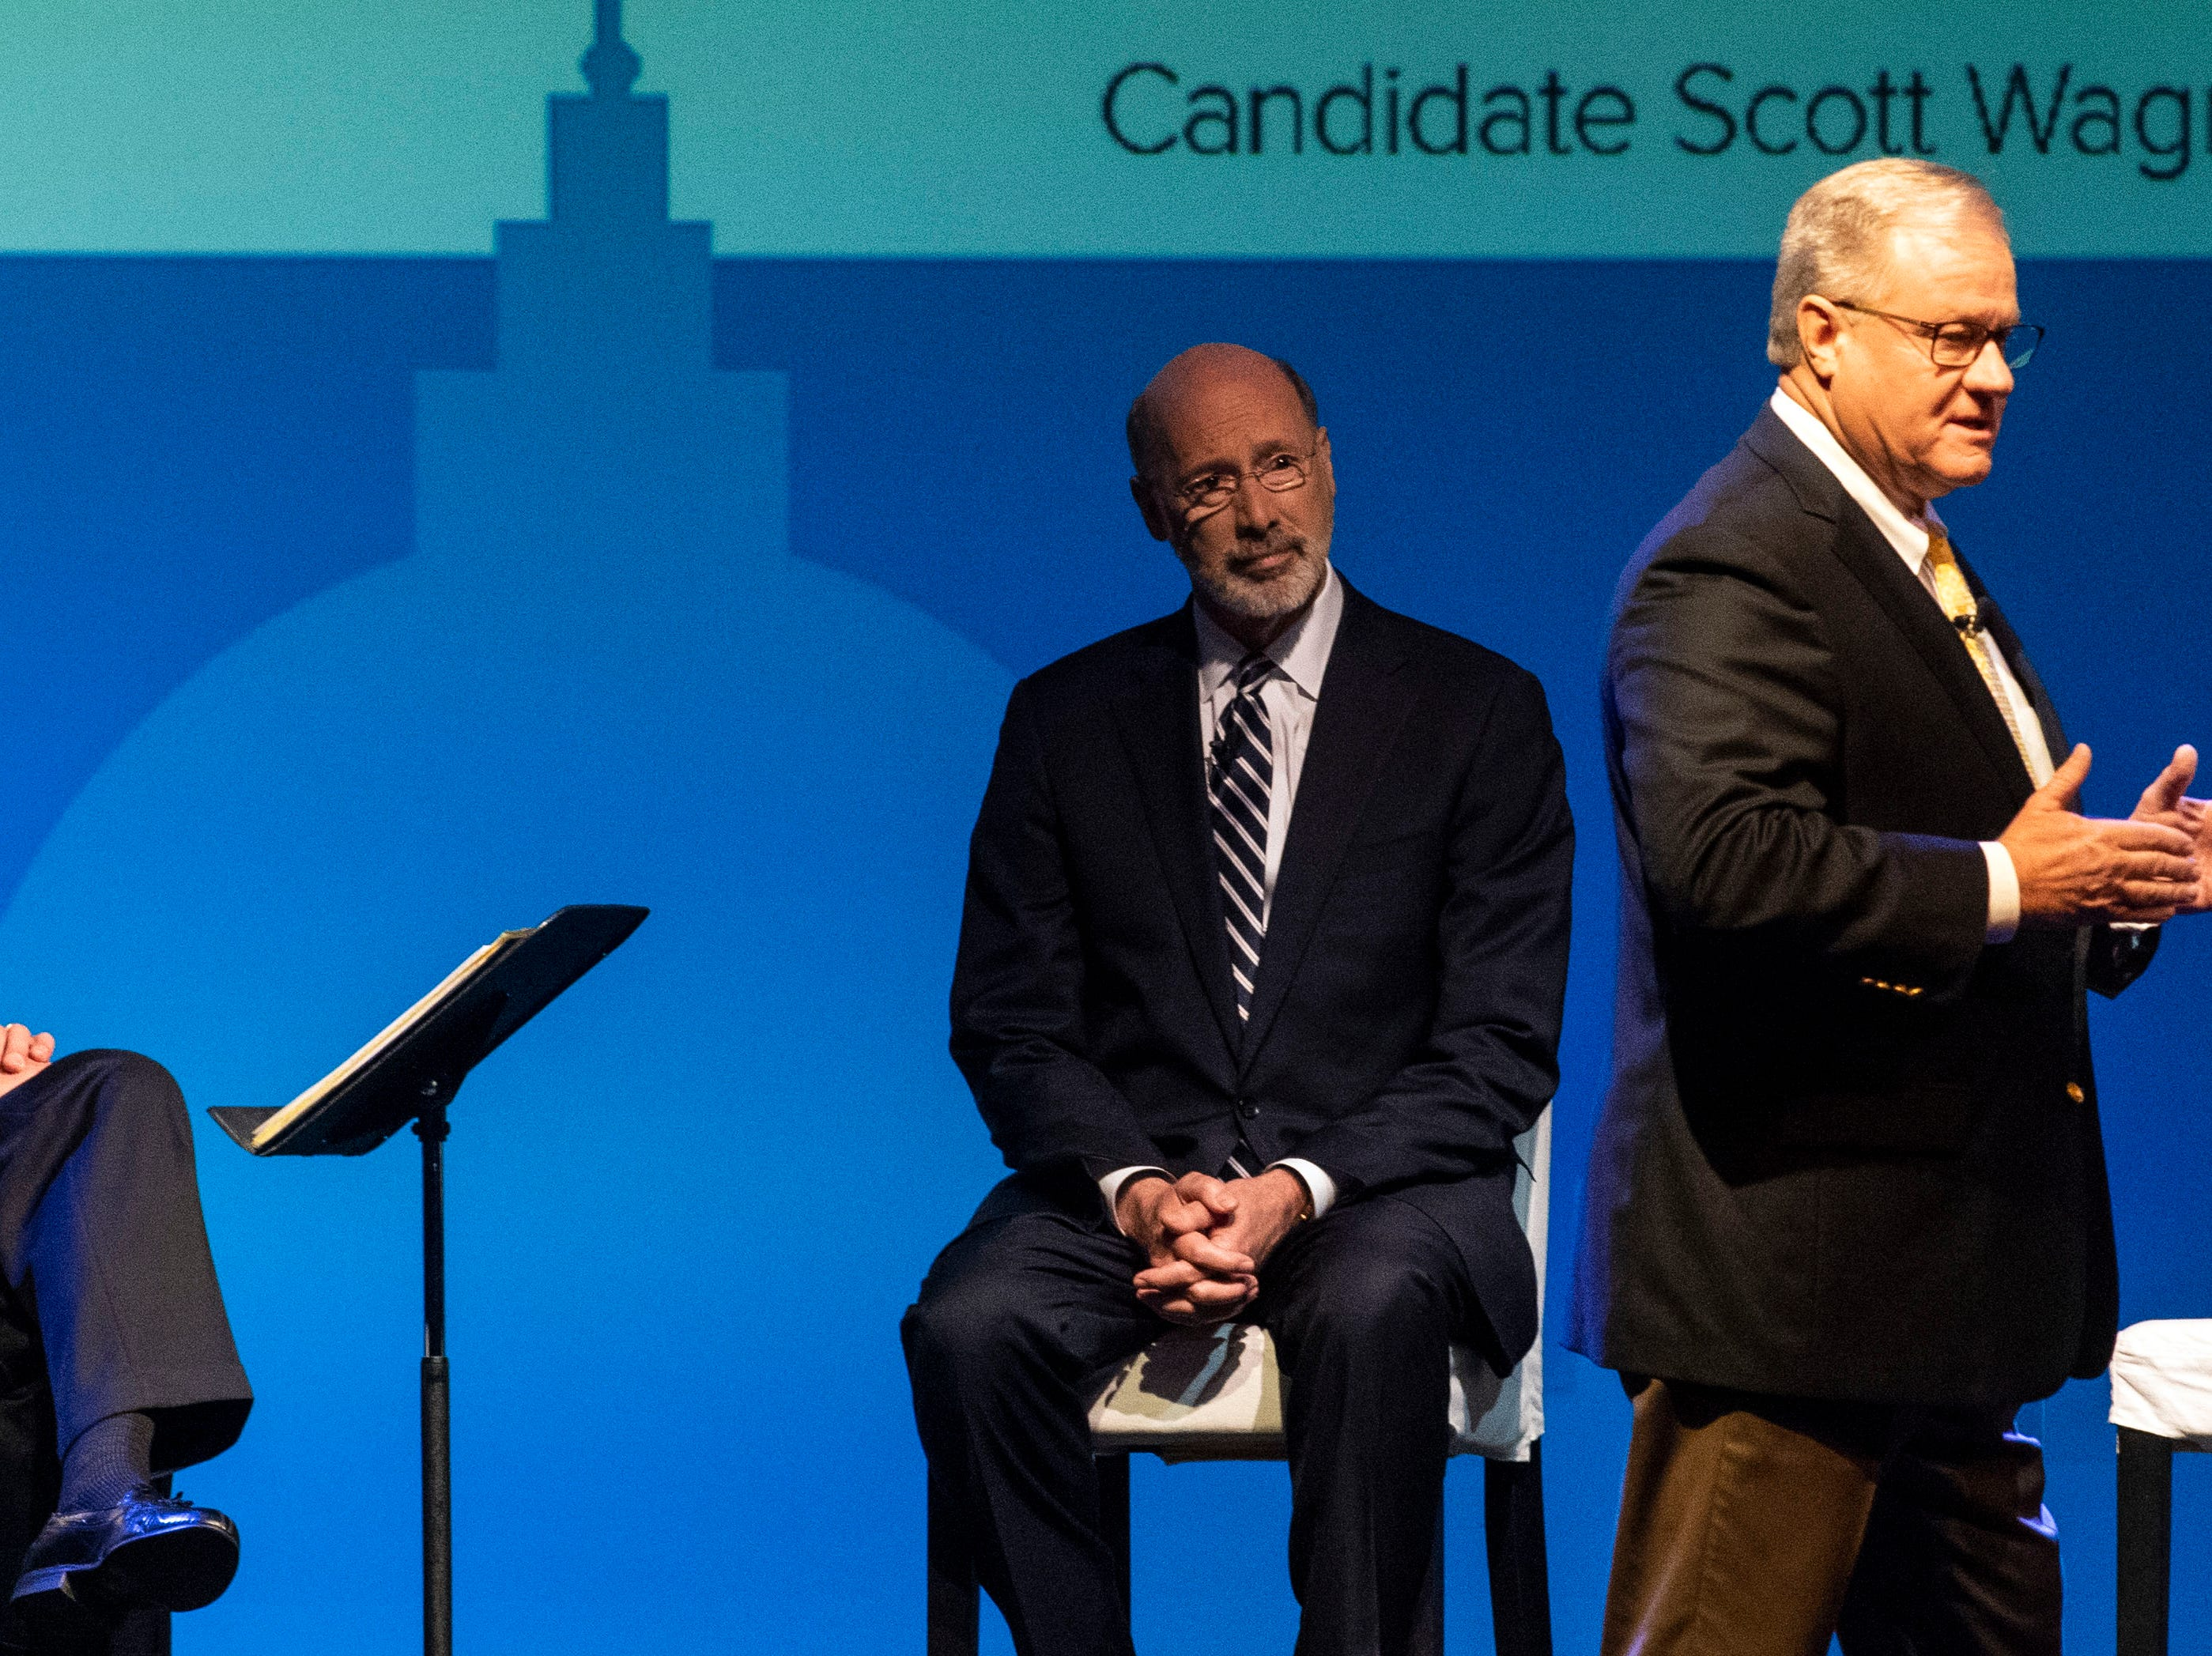 Republican challenger Scott Wagner, right, gives his opening remarks as Gov. Tom Wolf watches from behind, during the gubernatorial debate at Hershey Lodge on Monday, Oct. 1, 2018.